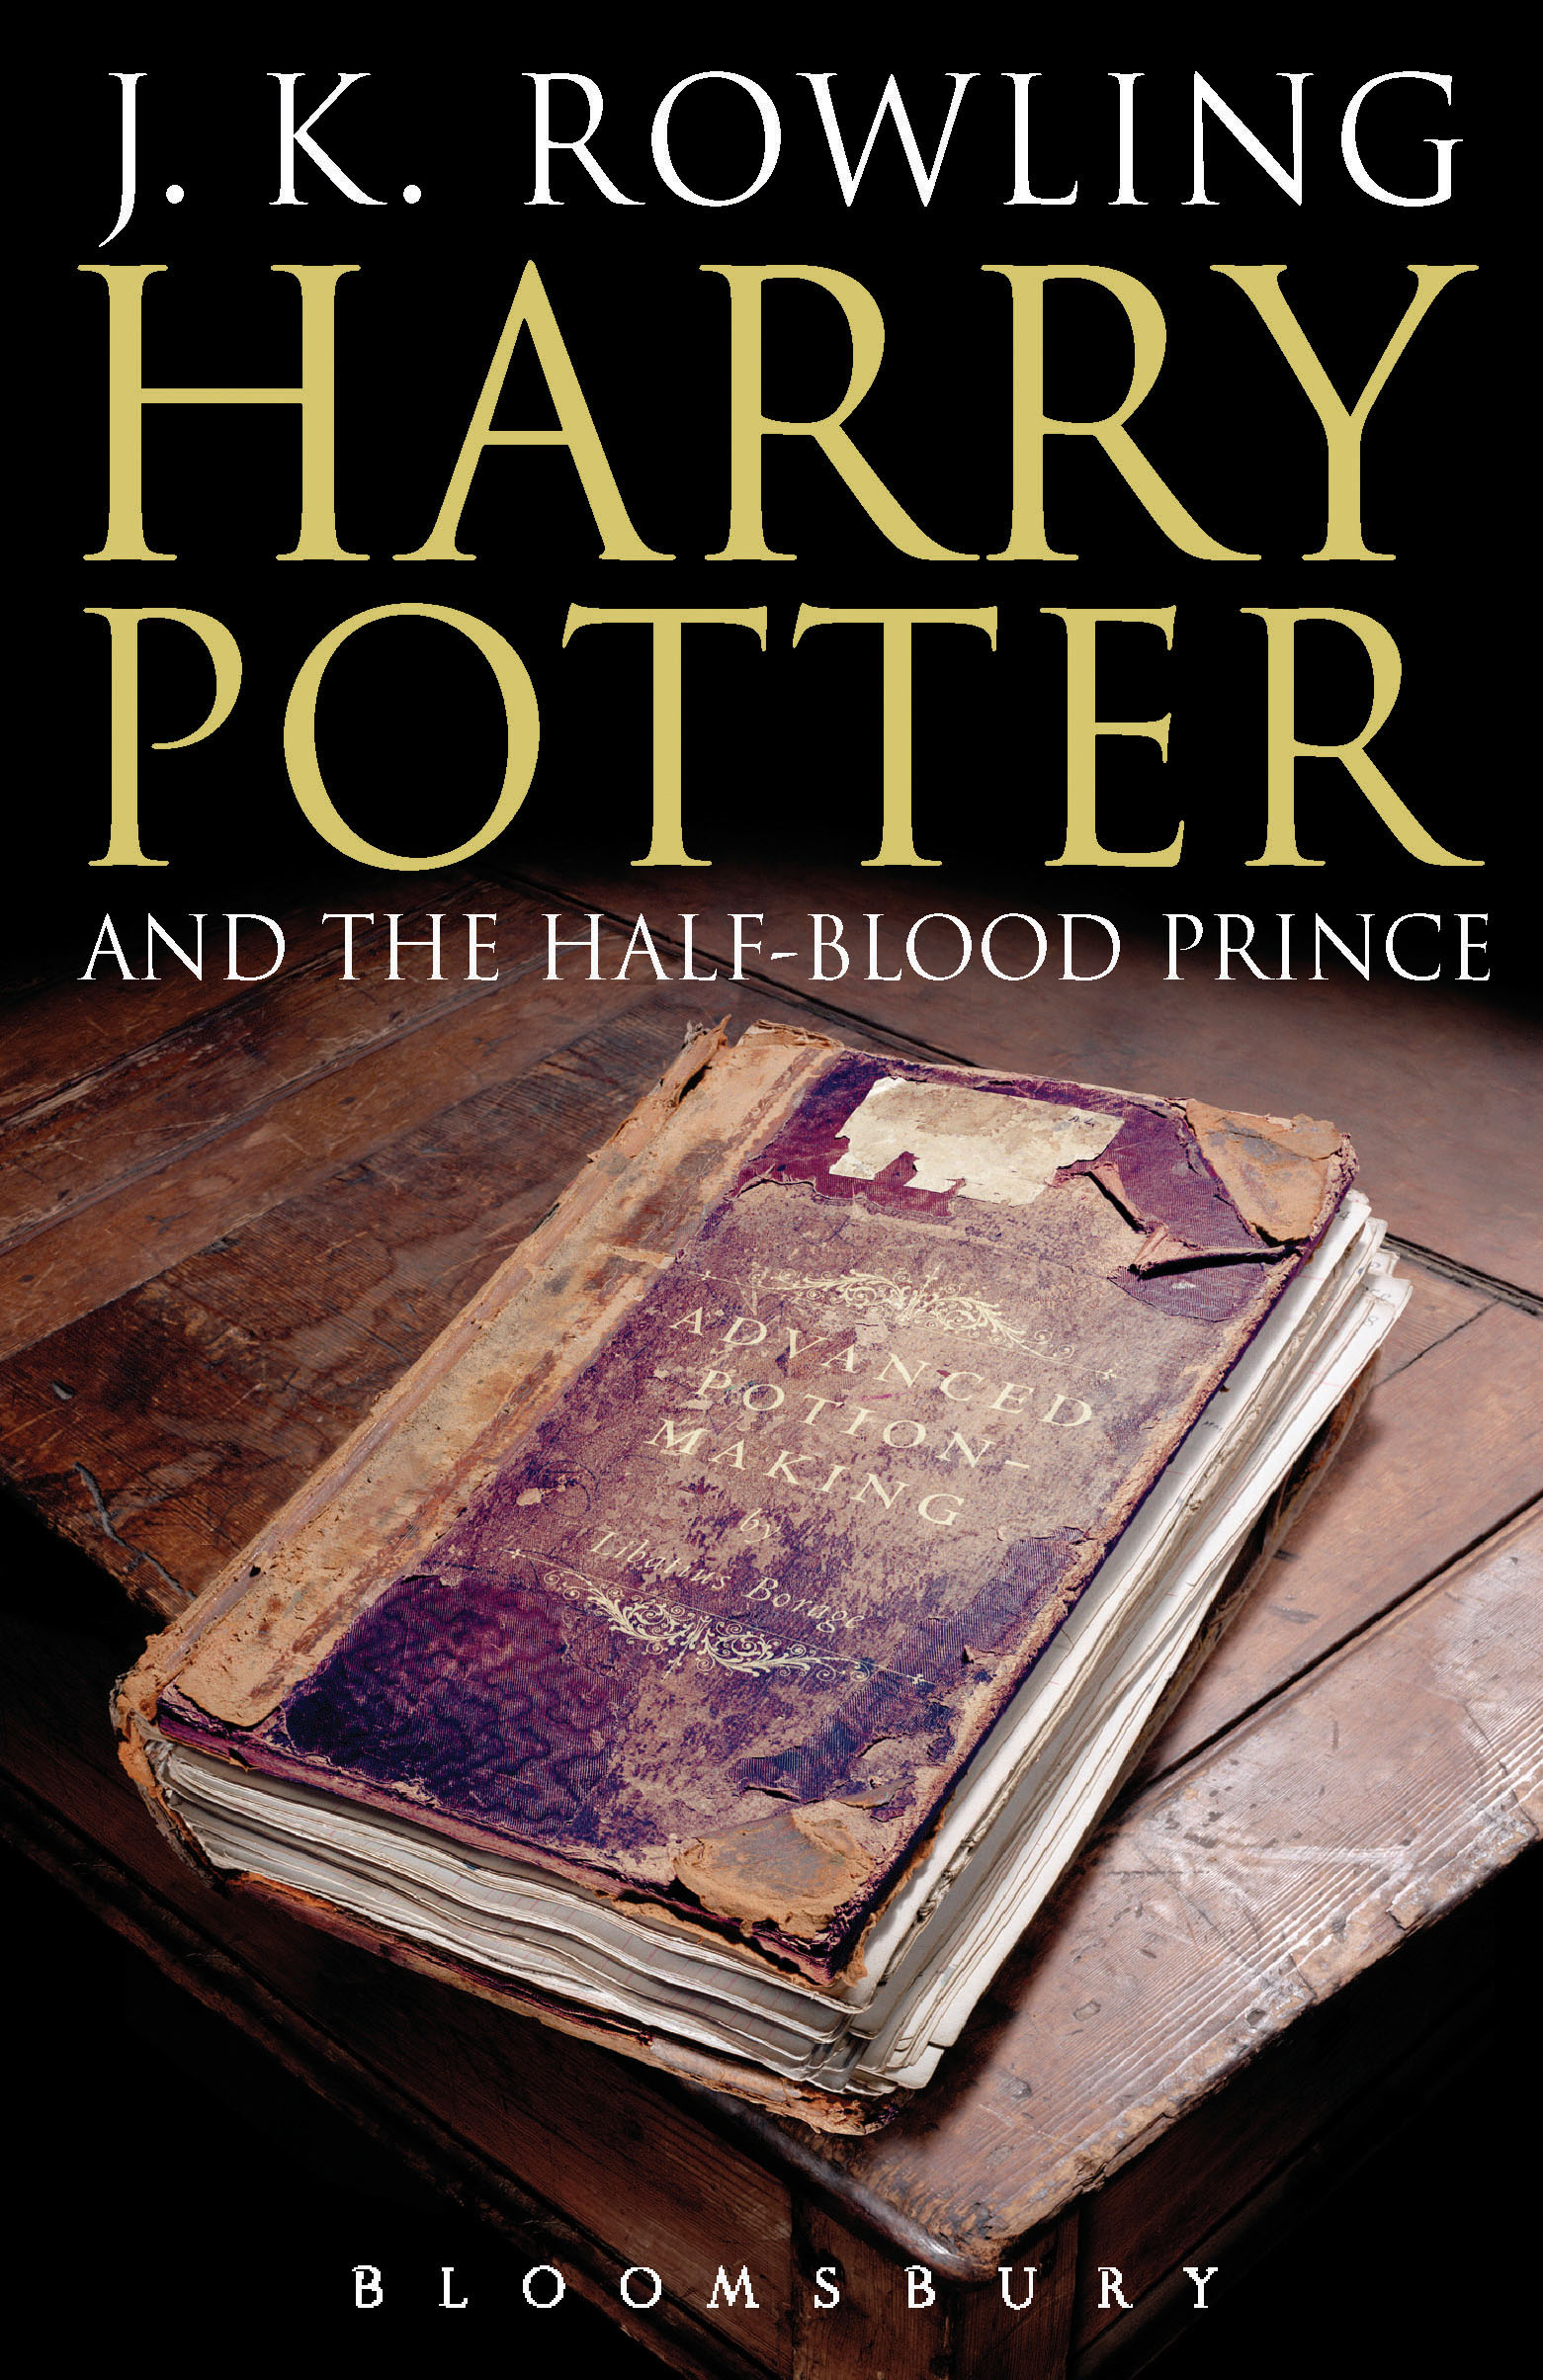 Harry Potter and the Half-Blood Prince Harry Potter Wiki